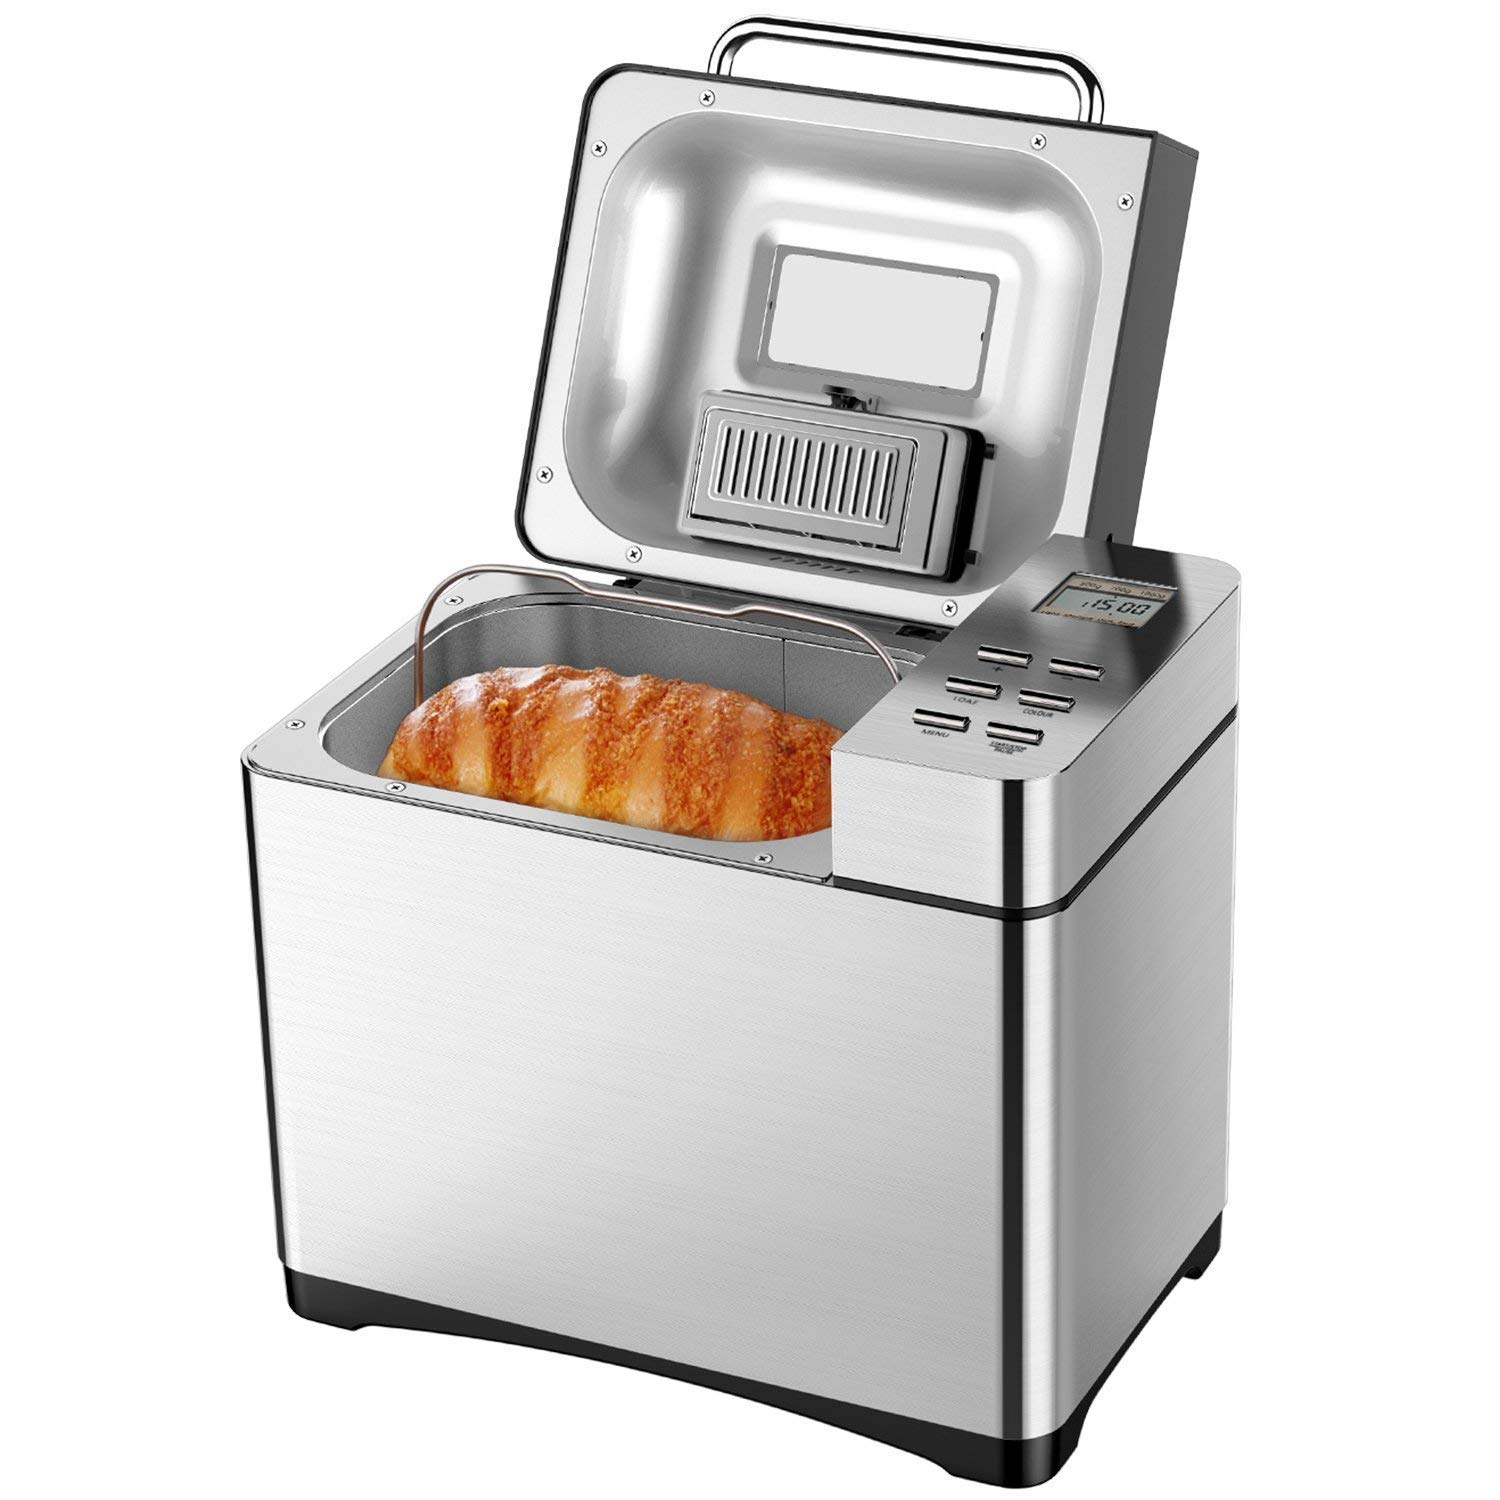 Aicok Automatic Bread Maker 2.2LB Fully Stainless Steel Bread Machine with Dispenser(19 Programs, 3 Loaf Sizes, 3 Crust Colors, 15-Hour Delay Timer, 1H Keep Warm, Gluten Free Setting)